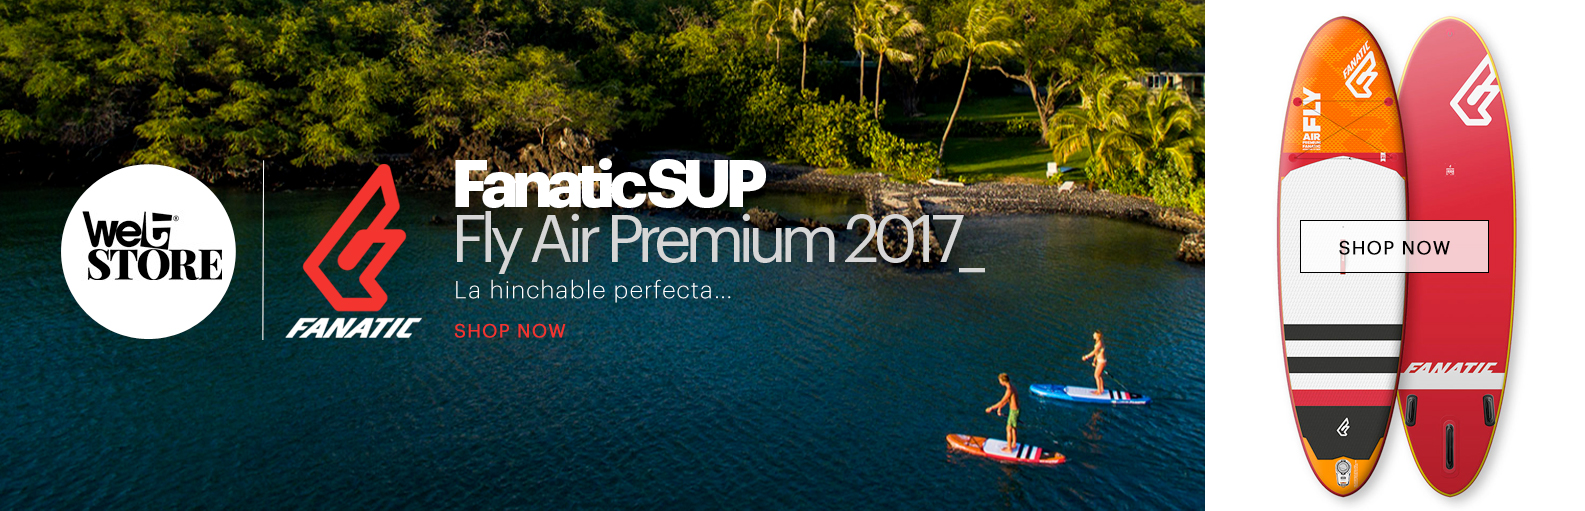 fanatic-sup-fly-air-premium-2017-banner